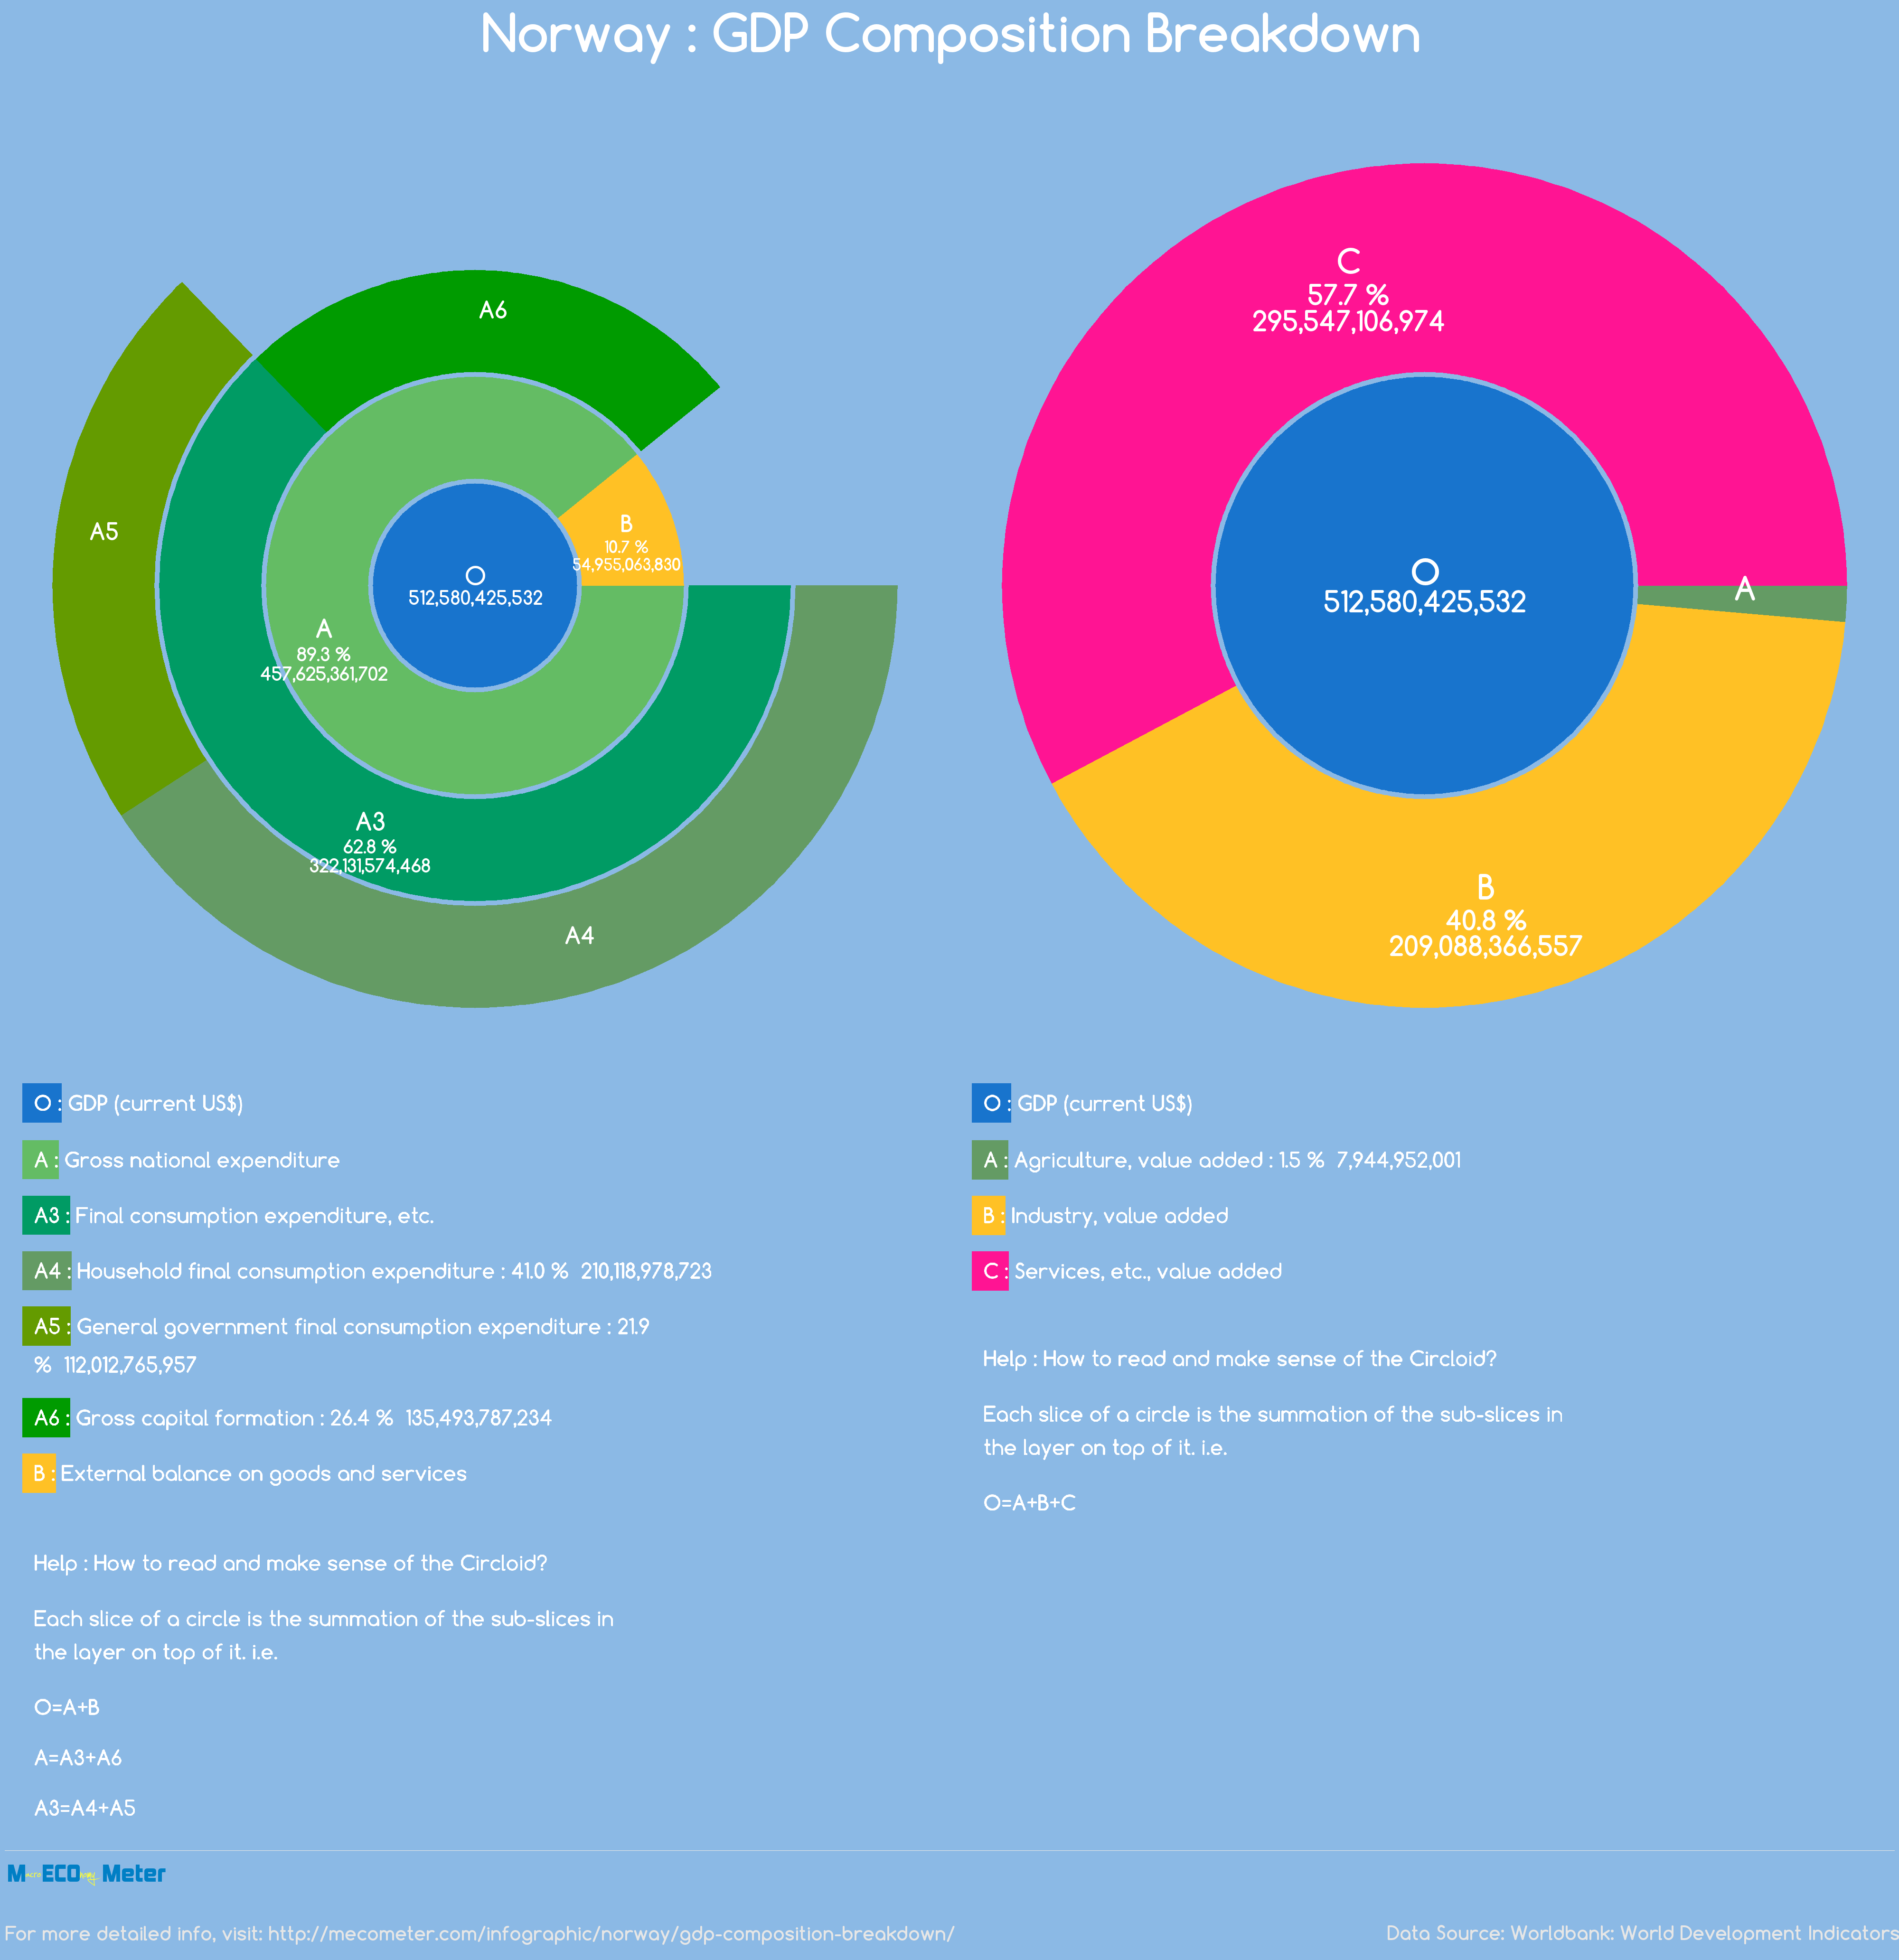 Norway : GDP Composition Breakdown